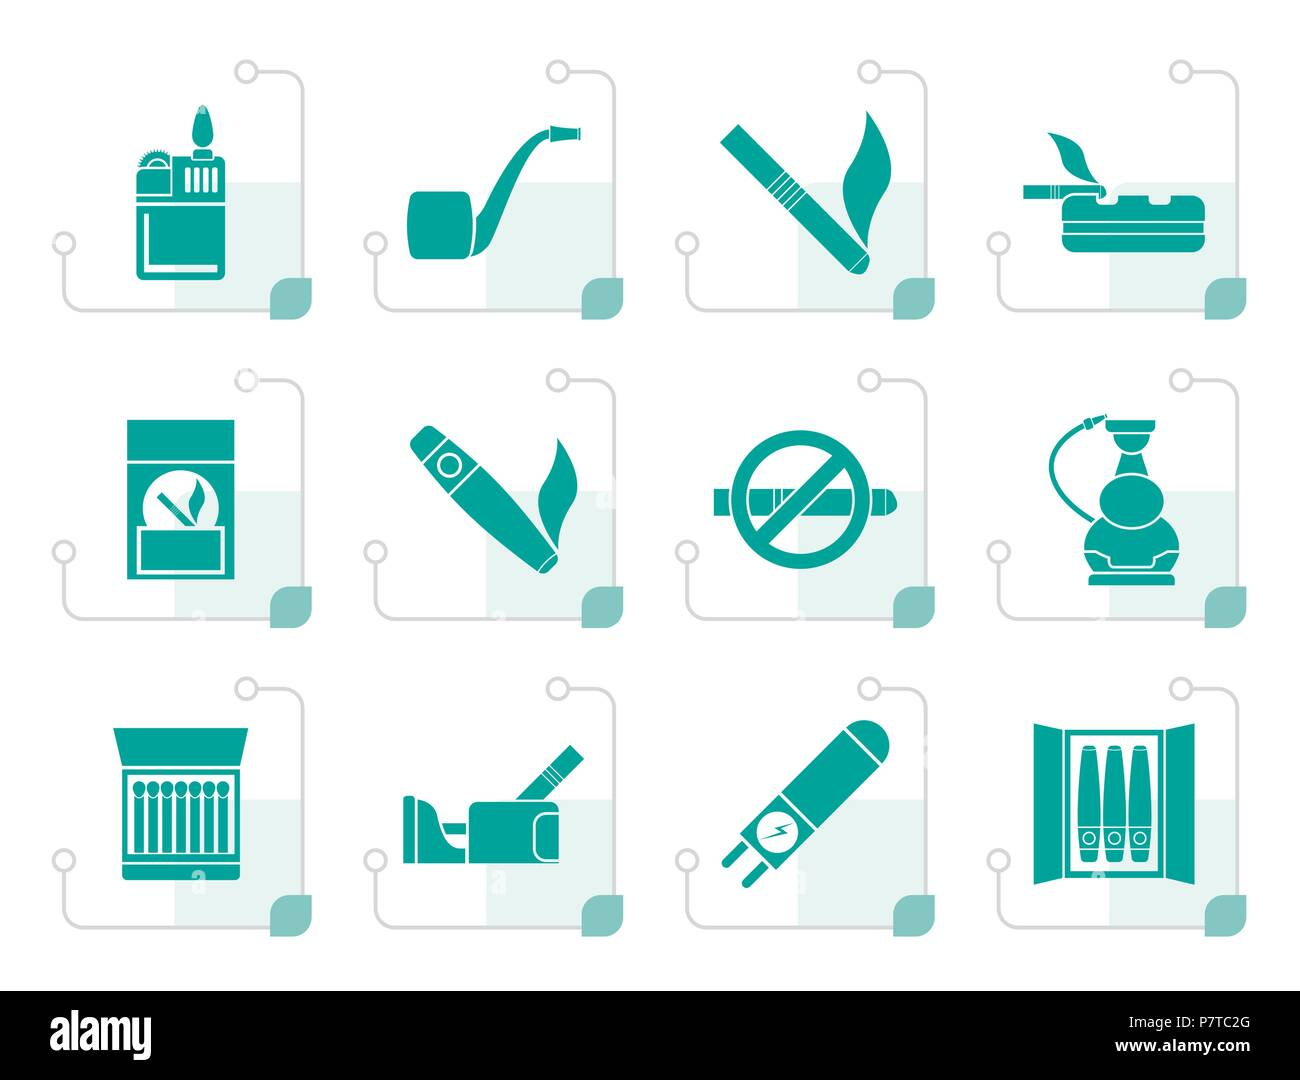 Stylized Smoking and cigarette icons - vector icon set - Stock Vector